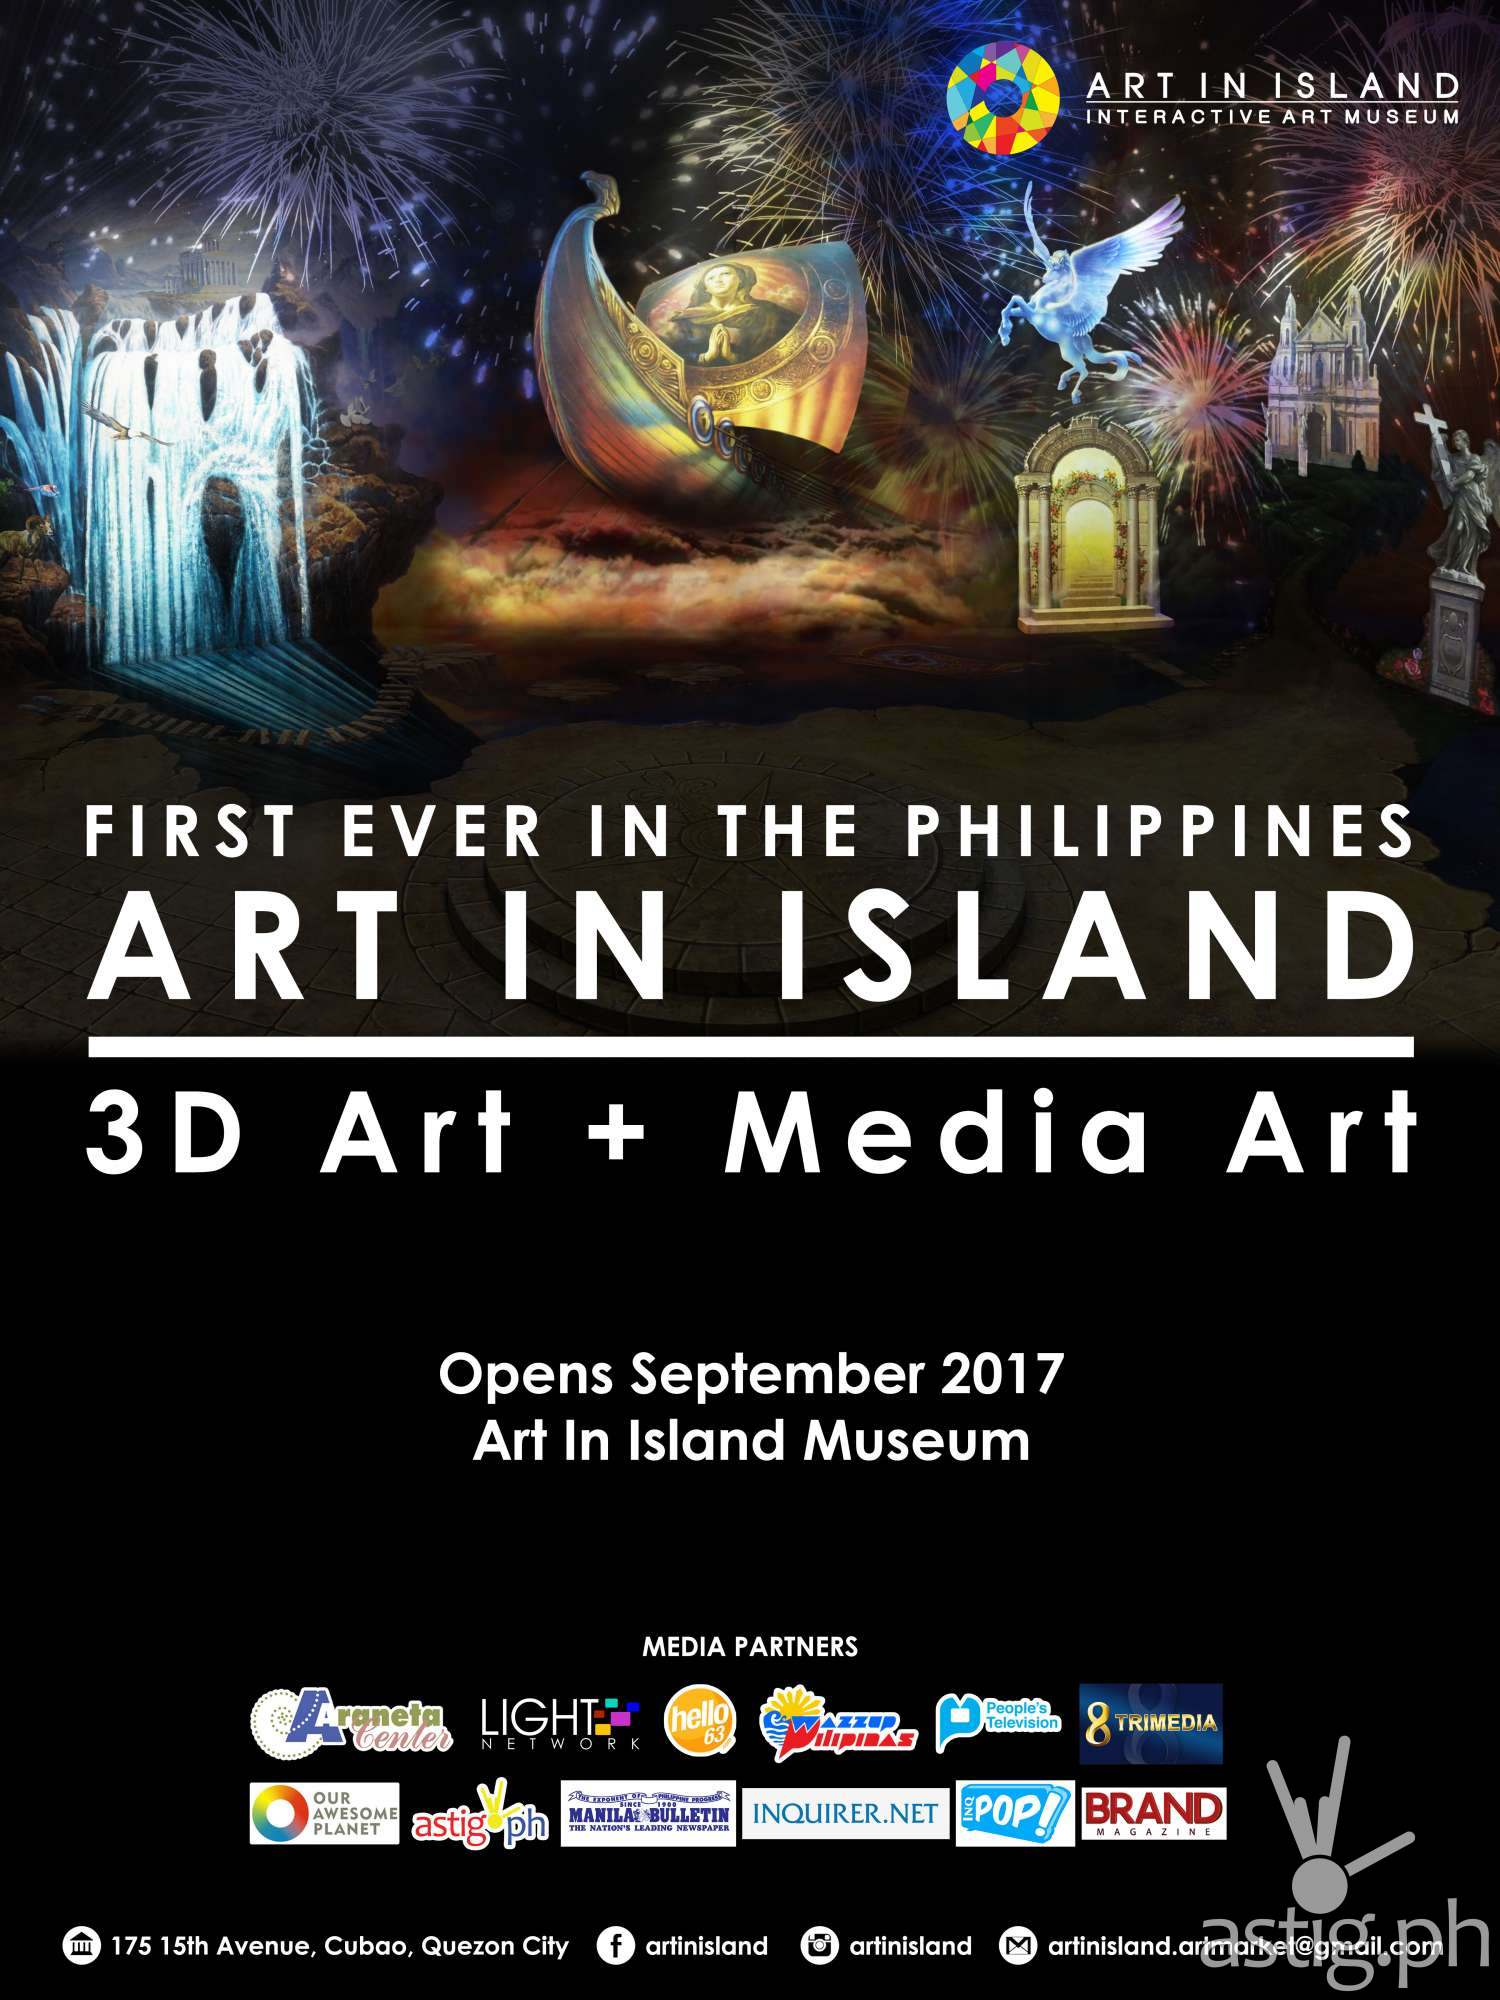 Colorful Life 2017 Art in Island Mural Competition event poster